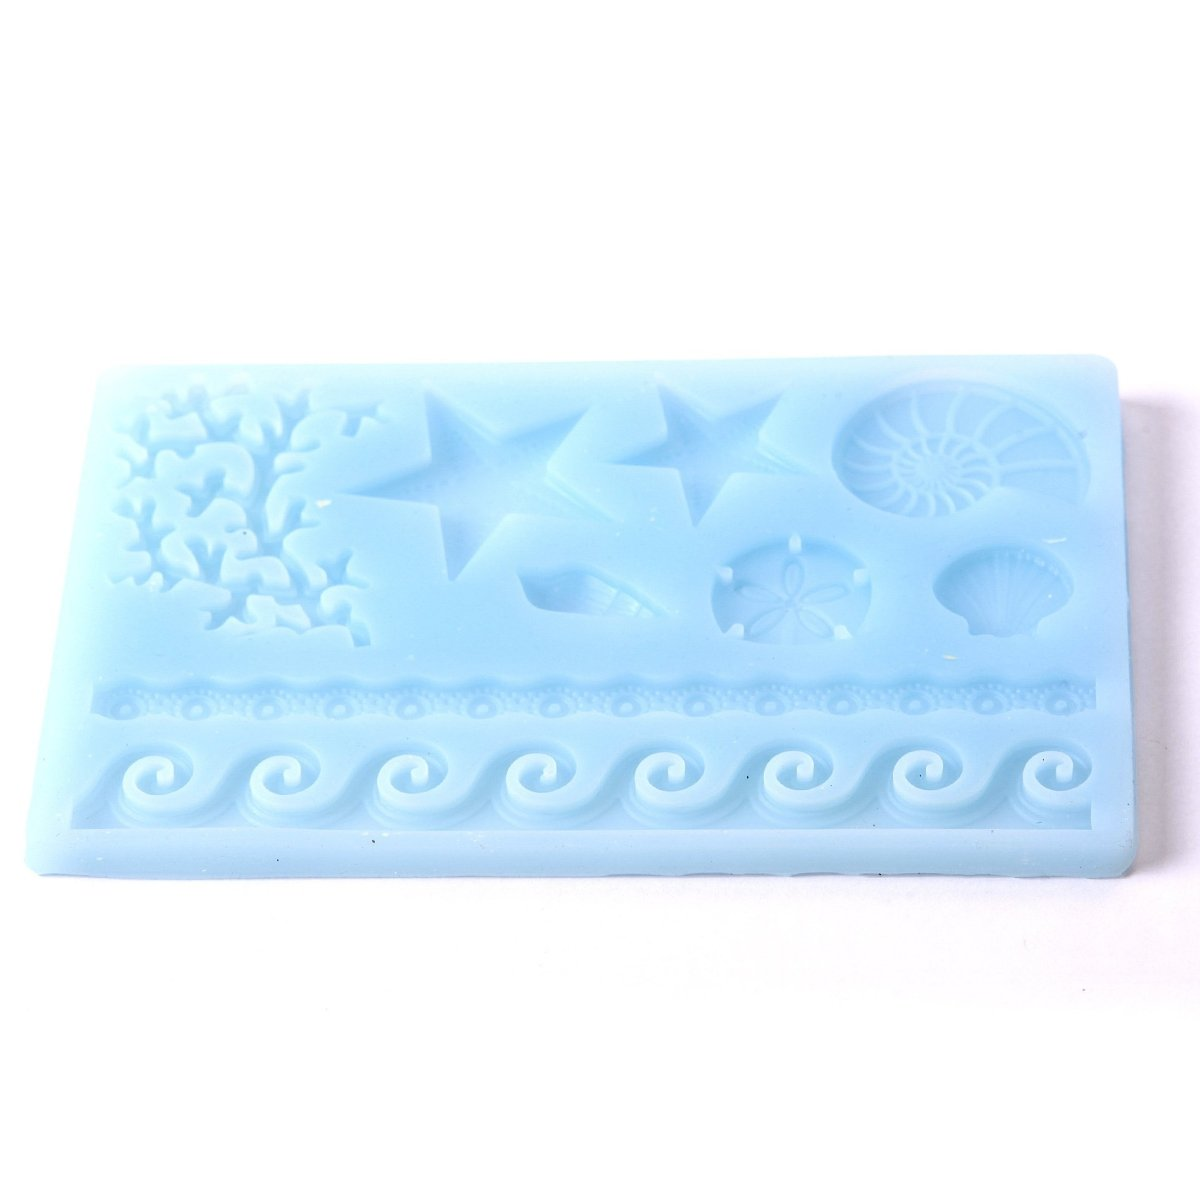 Sea Coral Fondant Cake Decorations/Soap/Jewellery Silicone Mould F0250 - Mystic Moments UK